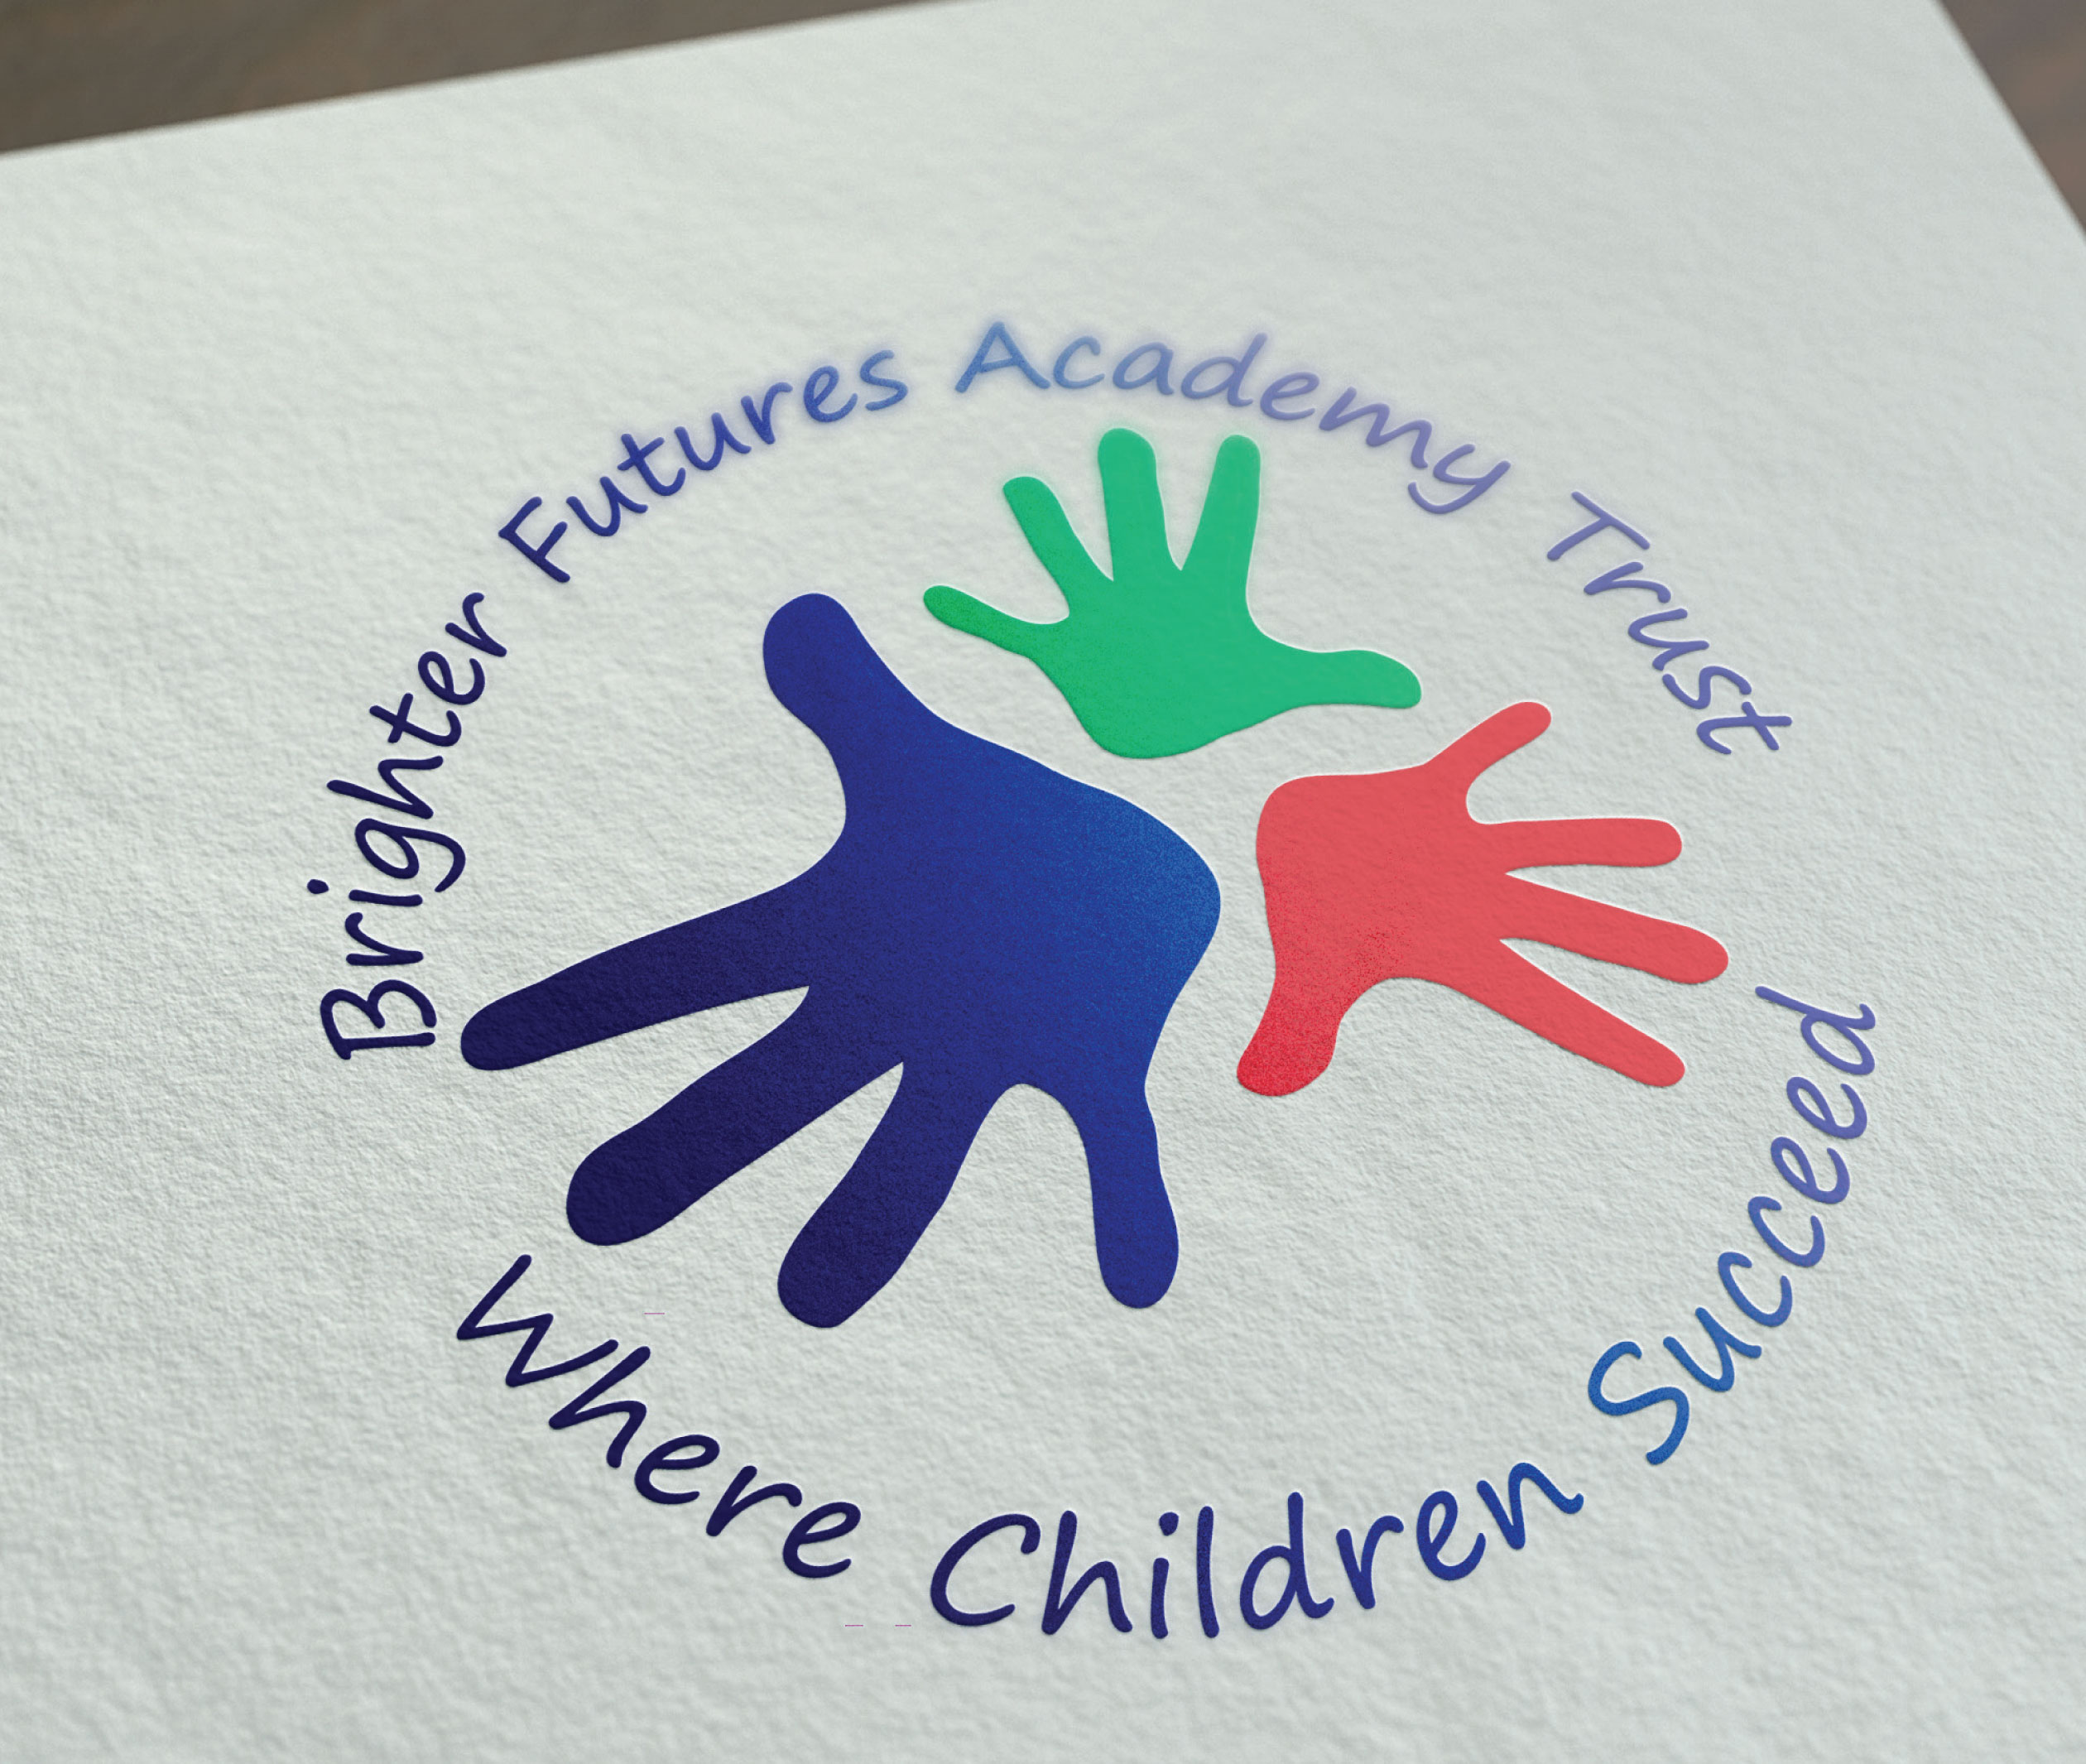 school branding for brighter futures academy trust